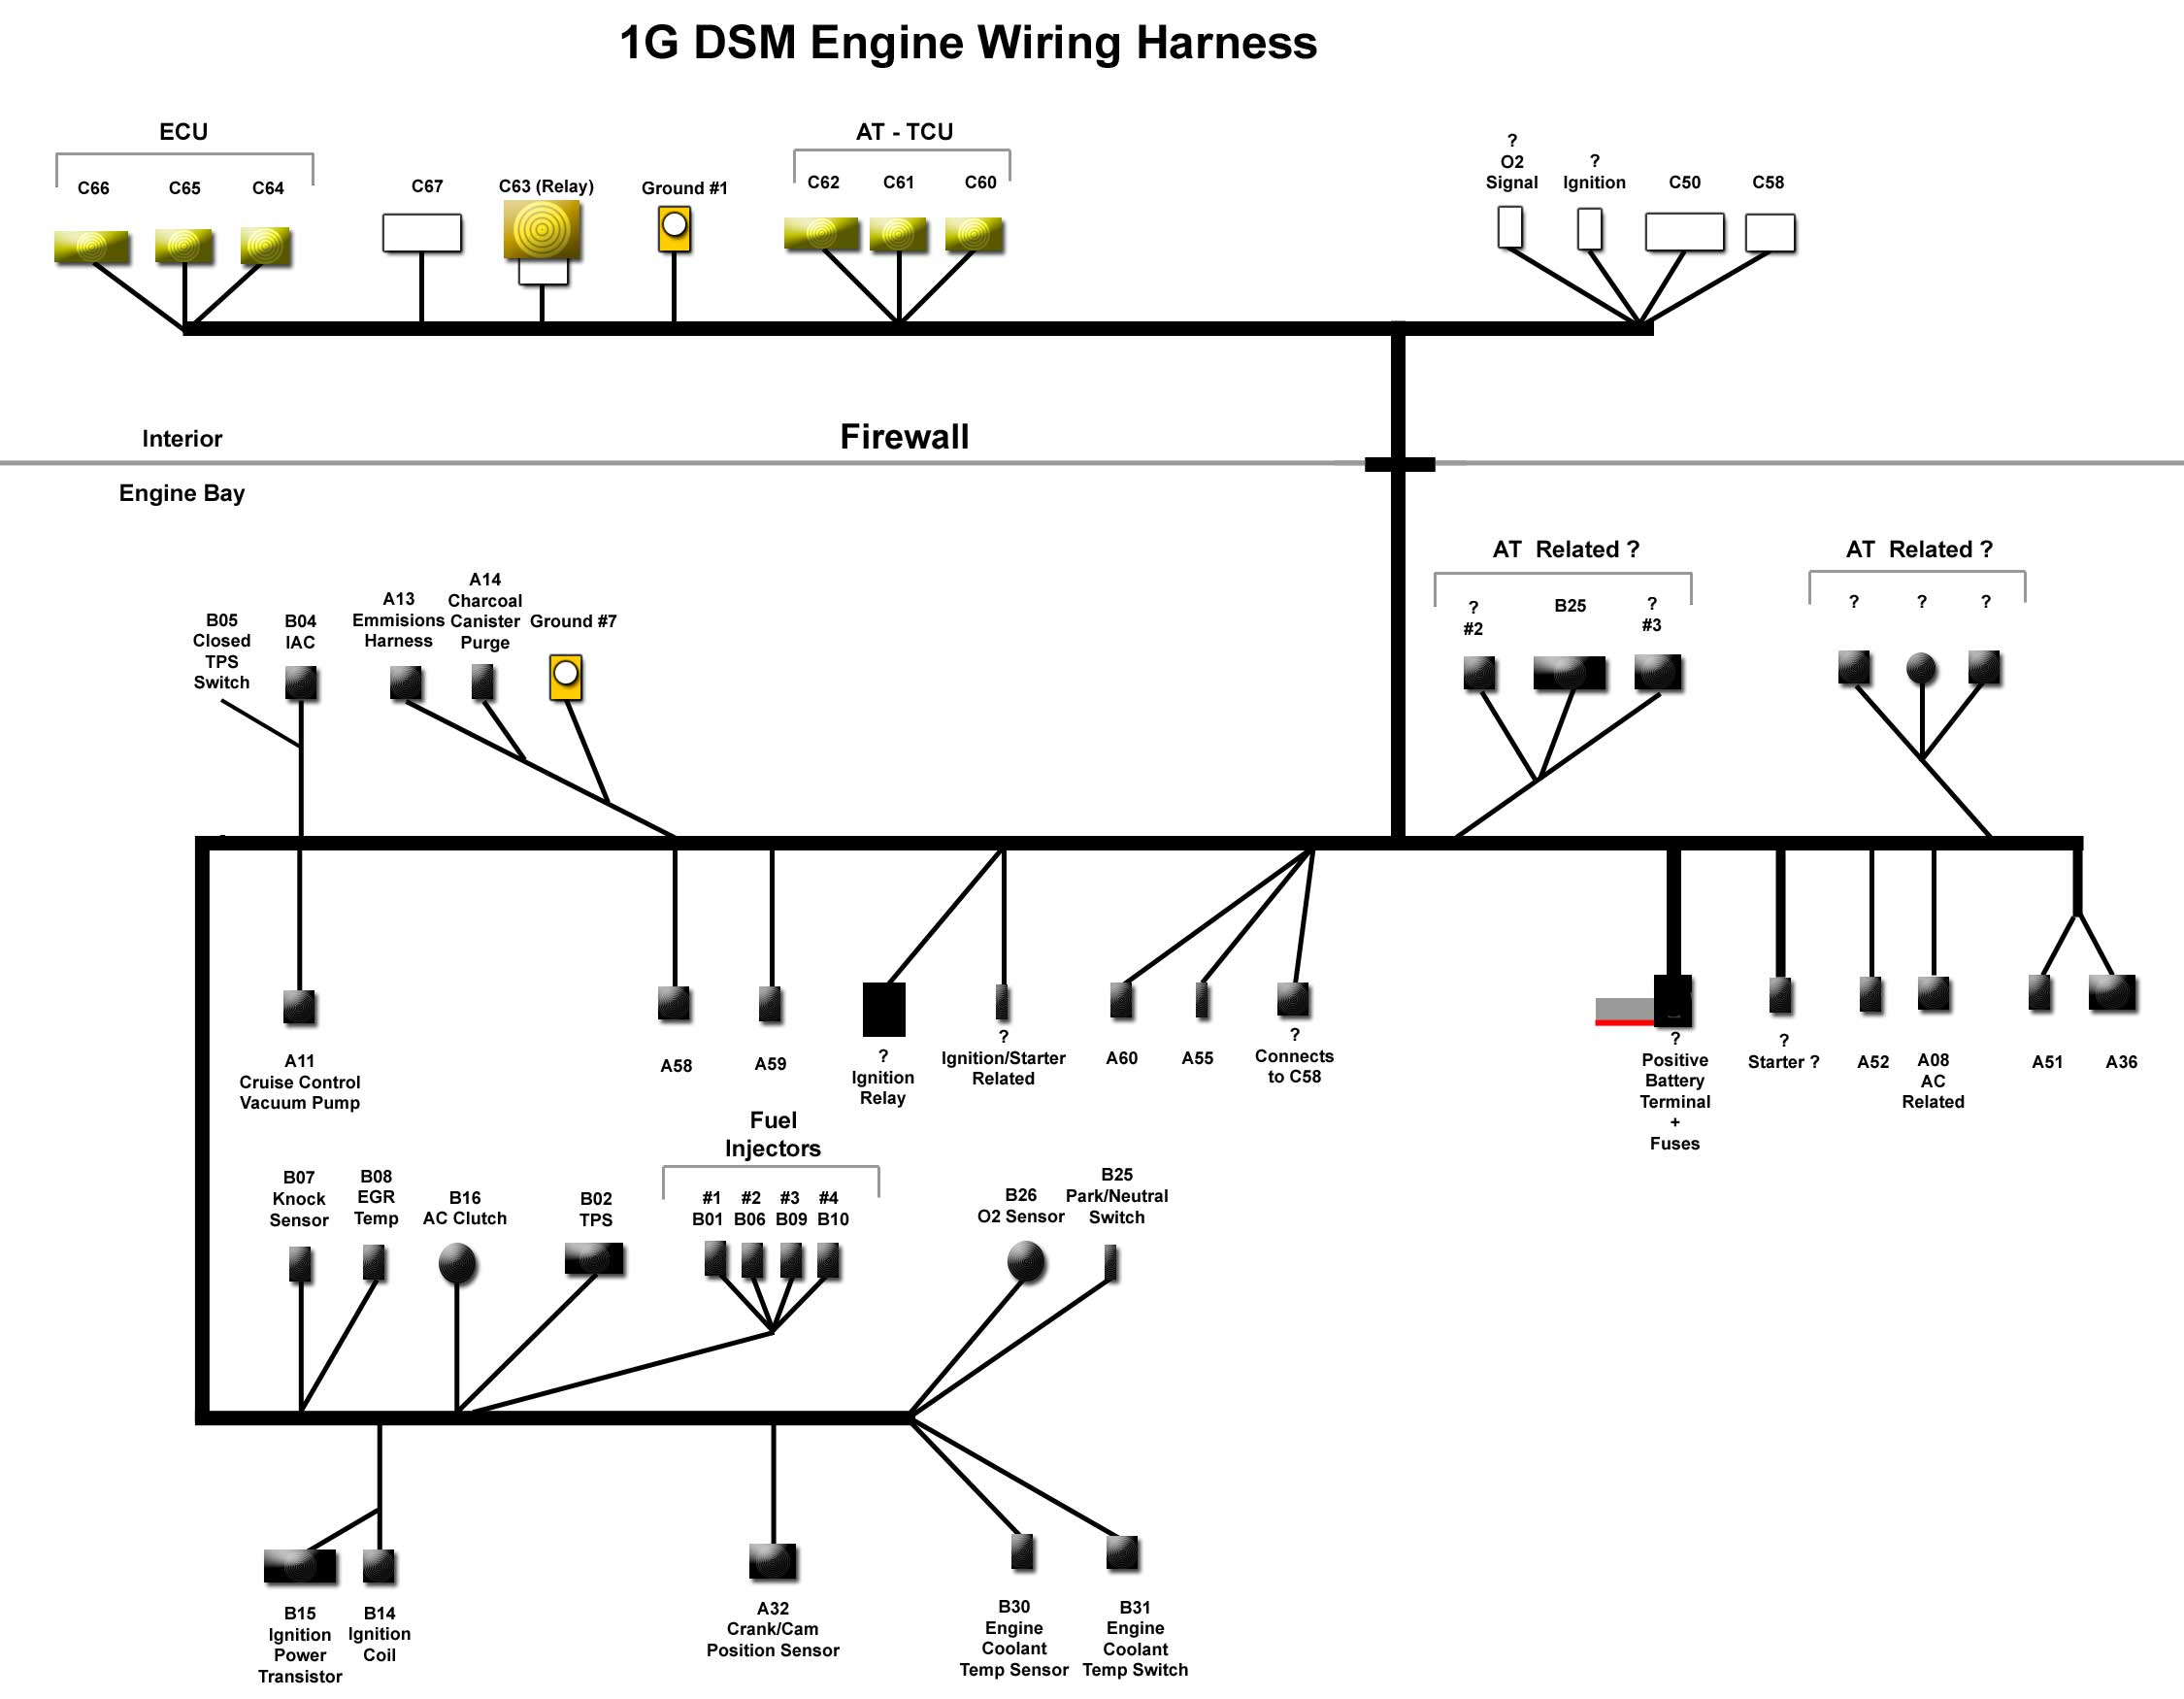 1G DSM EngineHarness 1g dsm wiring diagram diagram wiring diagrams for diy car repairs Wiring Harness Diagram at eliteediting.co